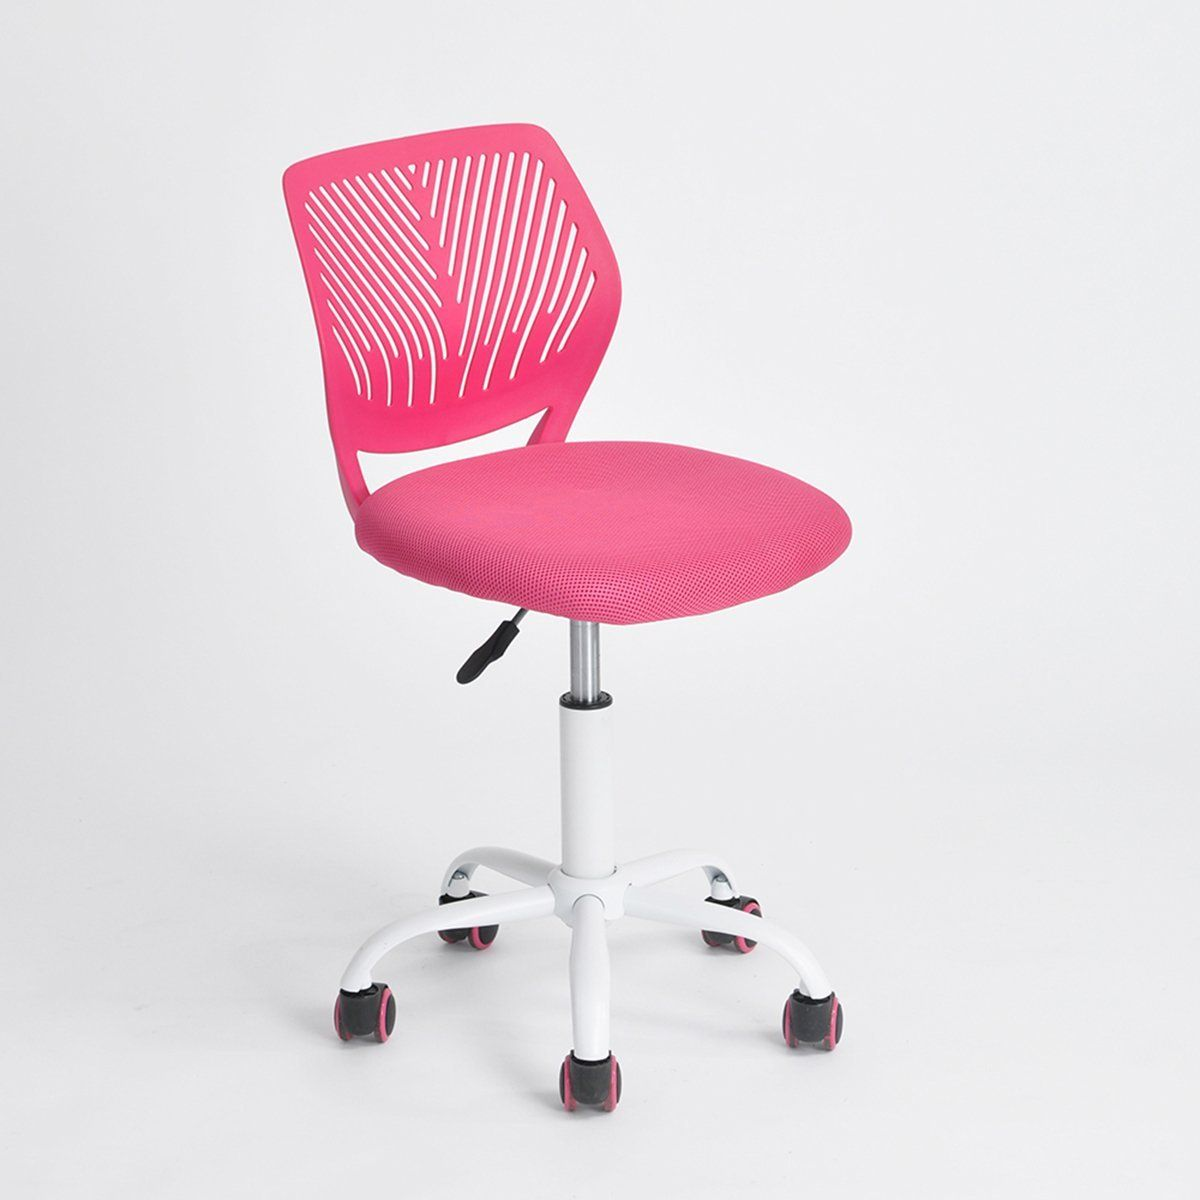 Desk Chairs For Kids amazon.com : pink office  Pink office chair